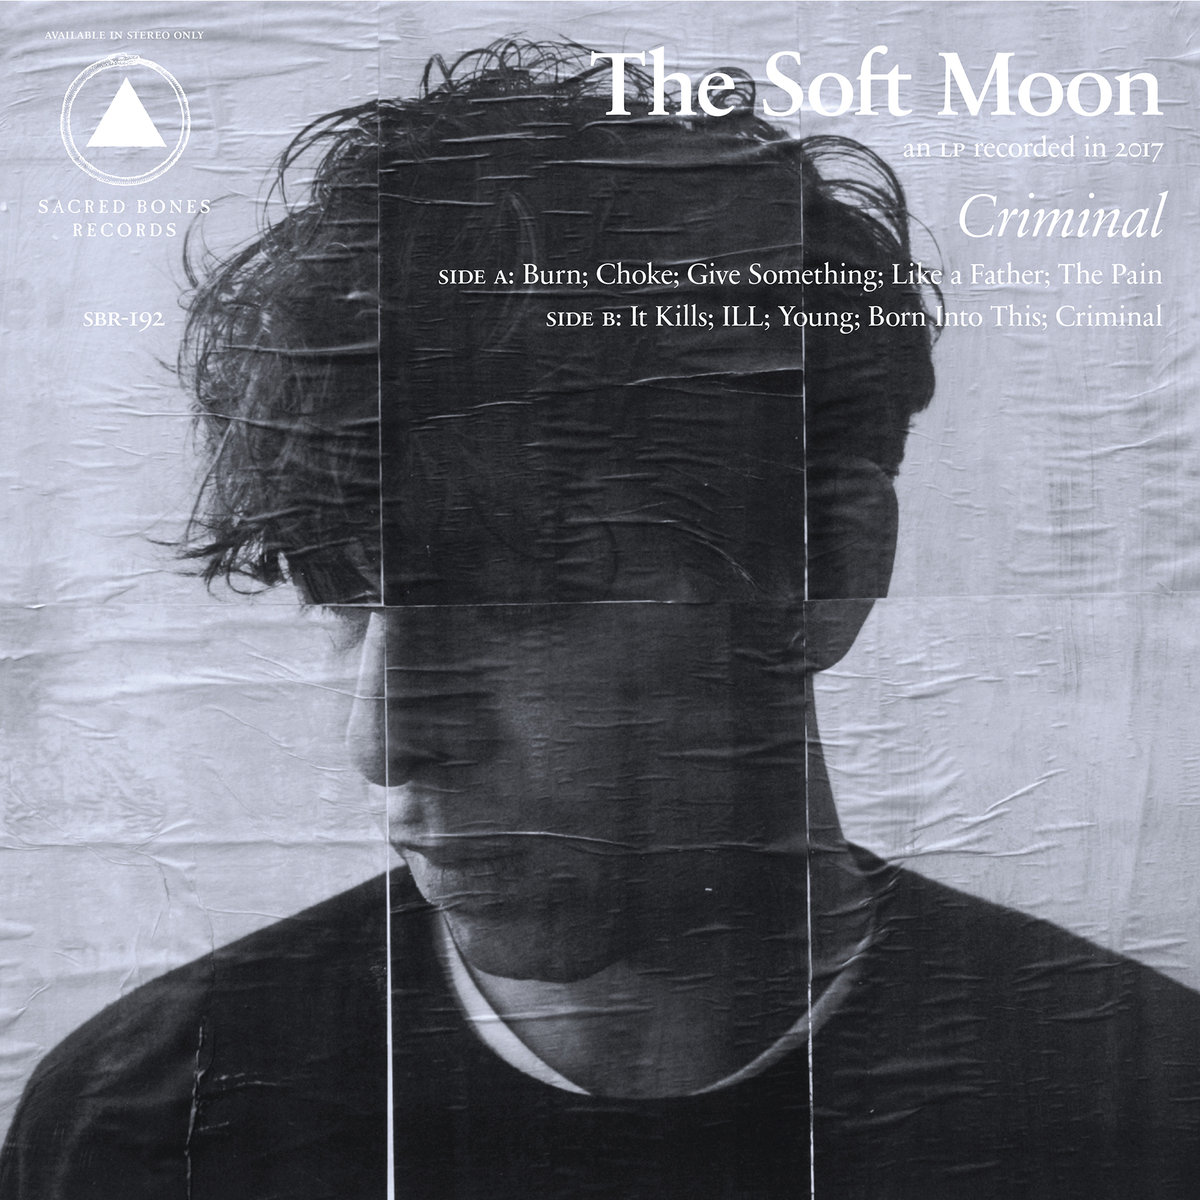 THE SOFT MOON Criminal – Vinyl LP (black | white) | CD